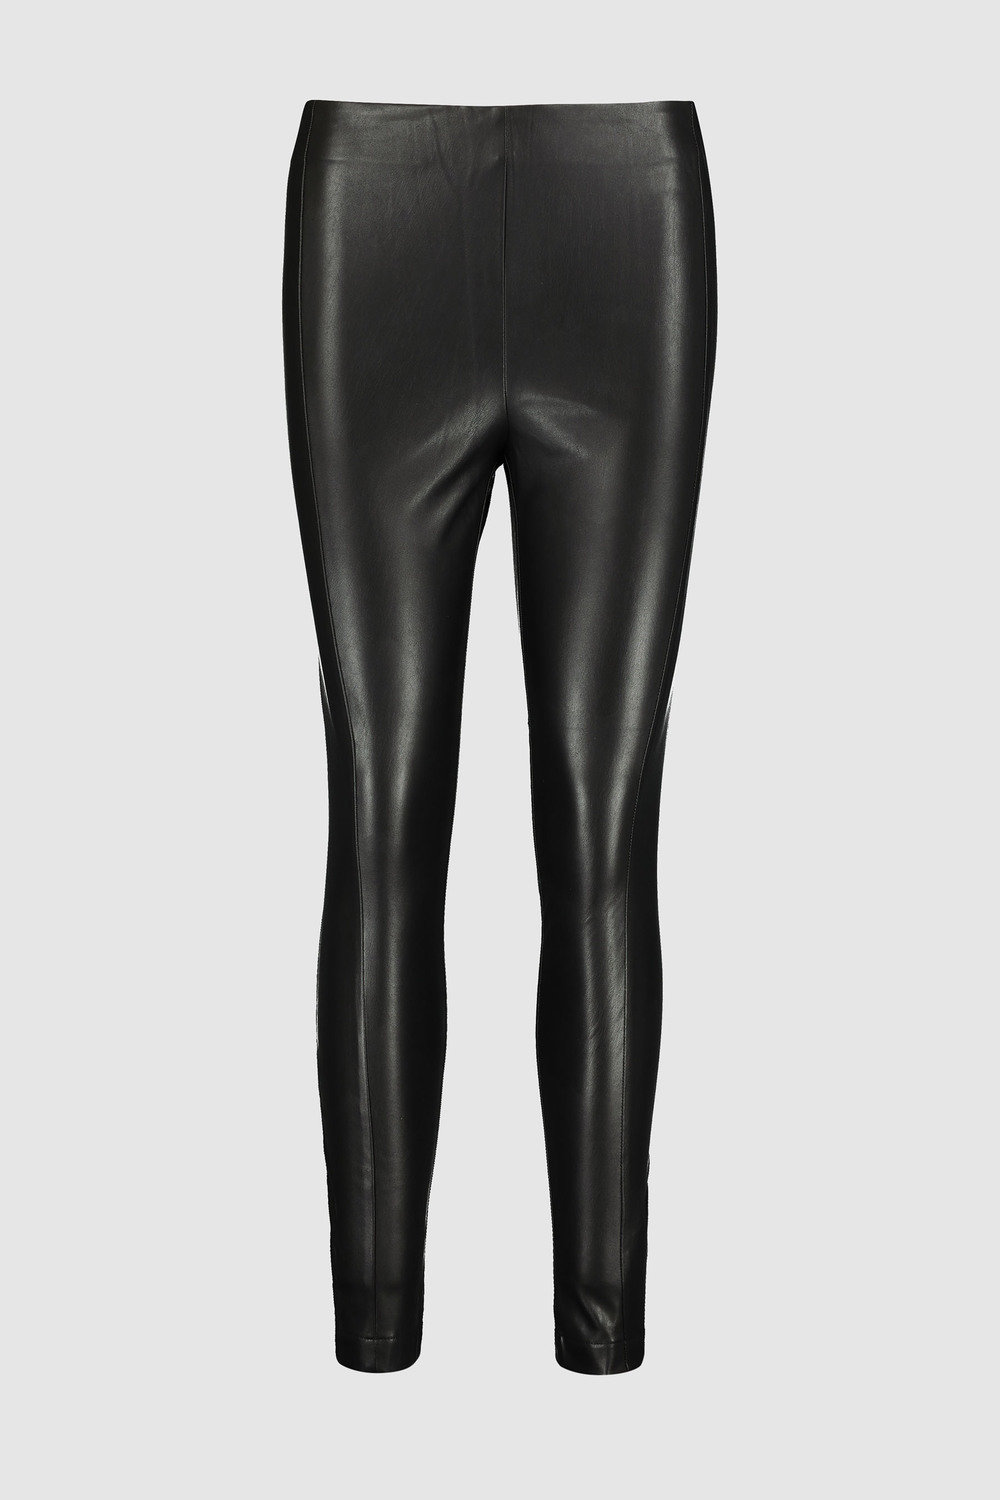 fashionable patterns purchase original world-wide free shipping Next Faux Leather Leggings